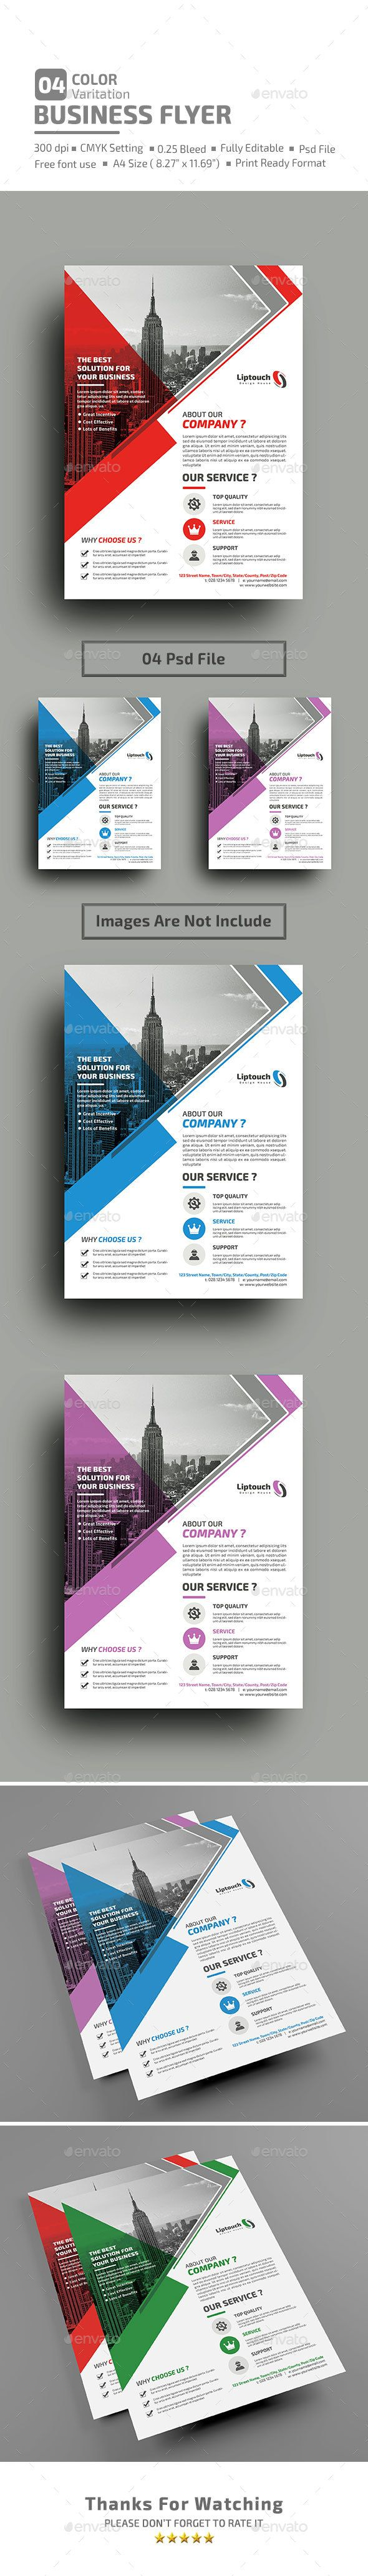 10 best Business flyers images on Pinterest | Business flyers ...